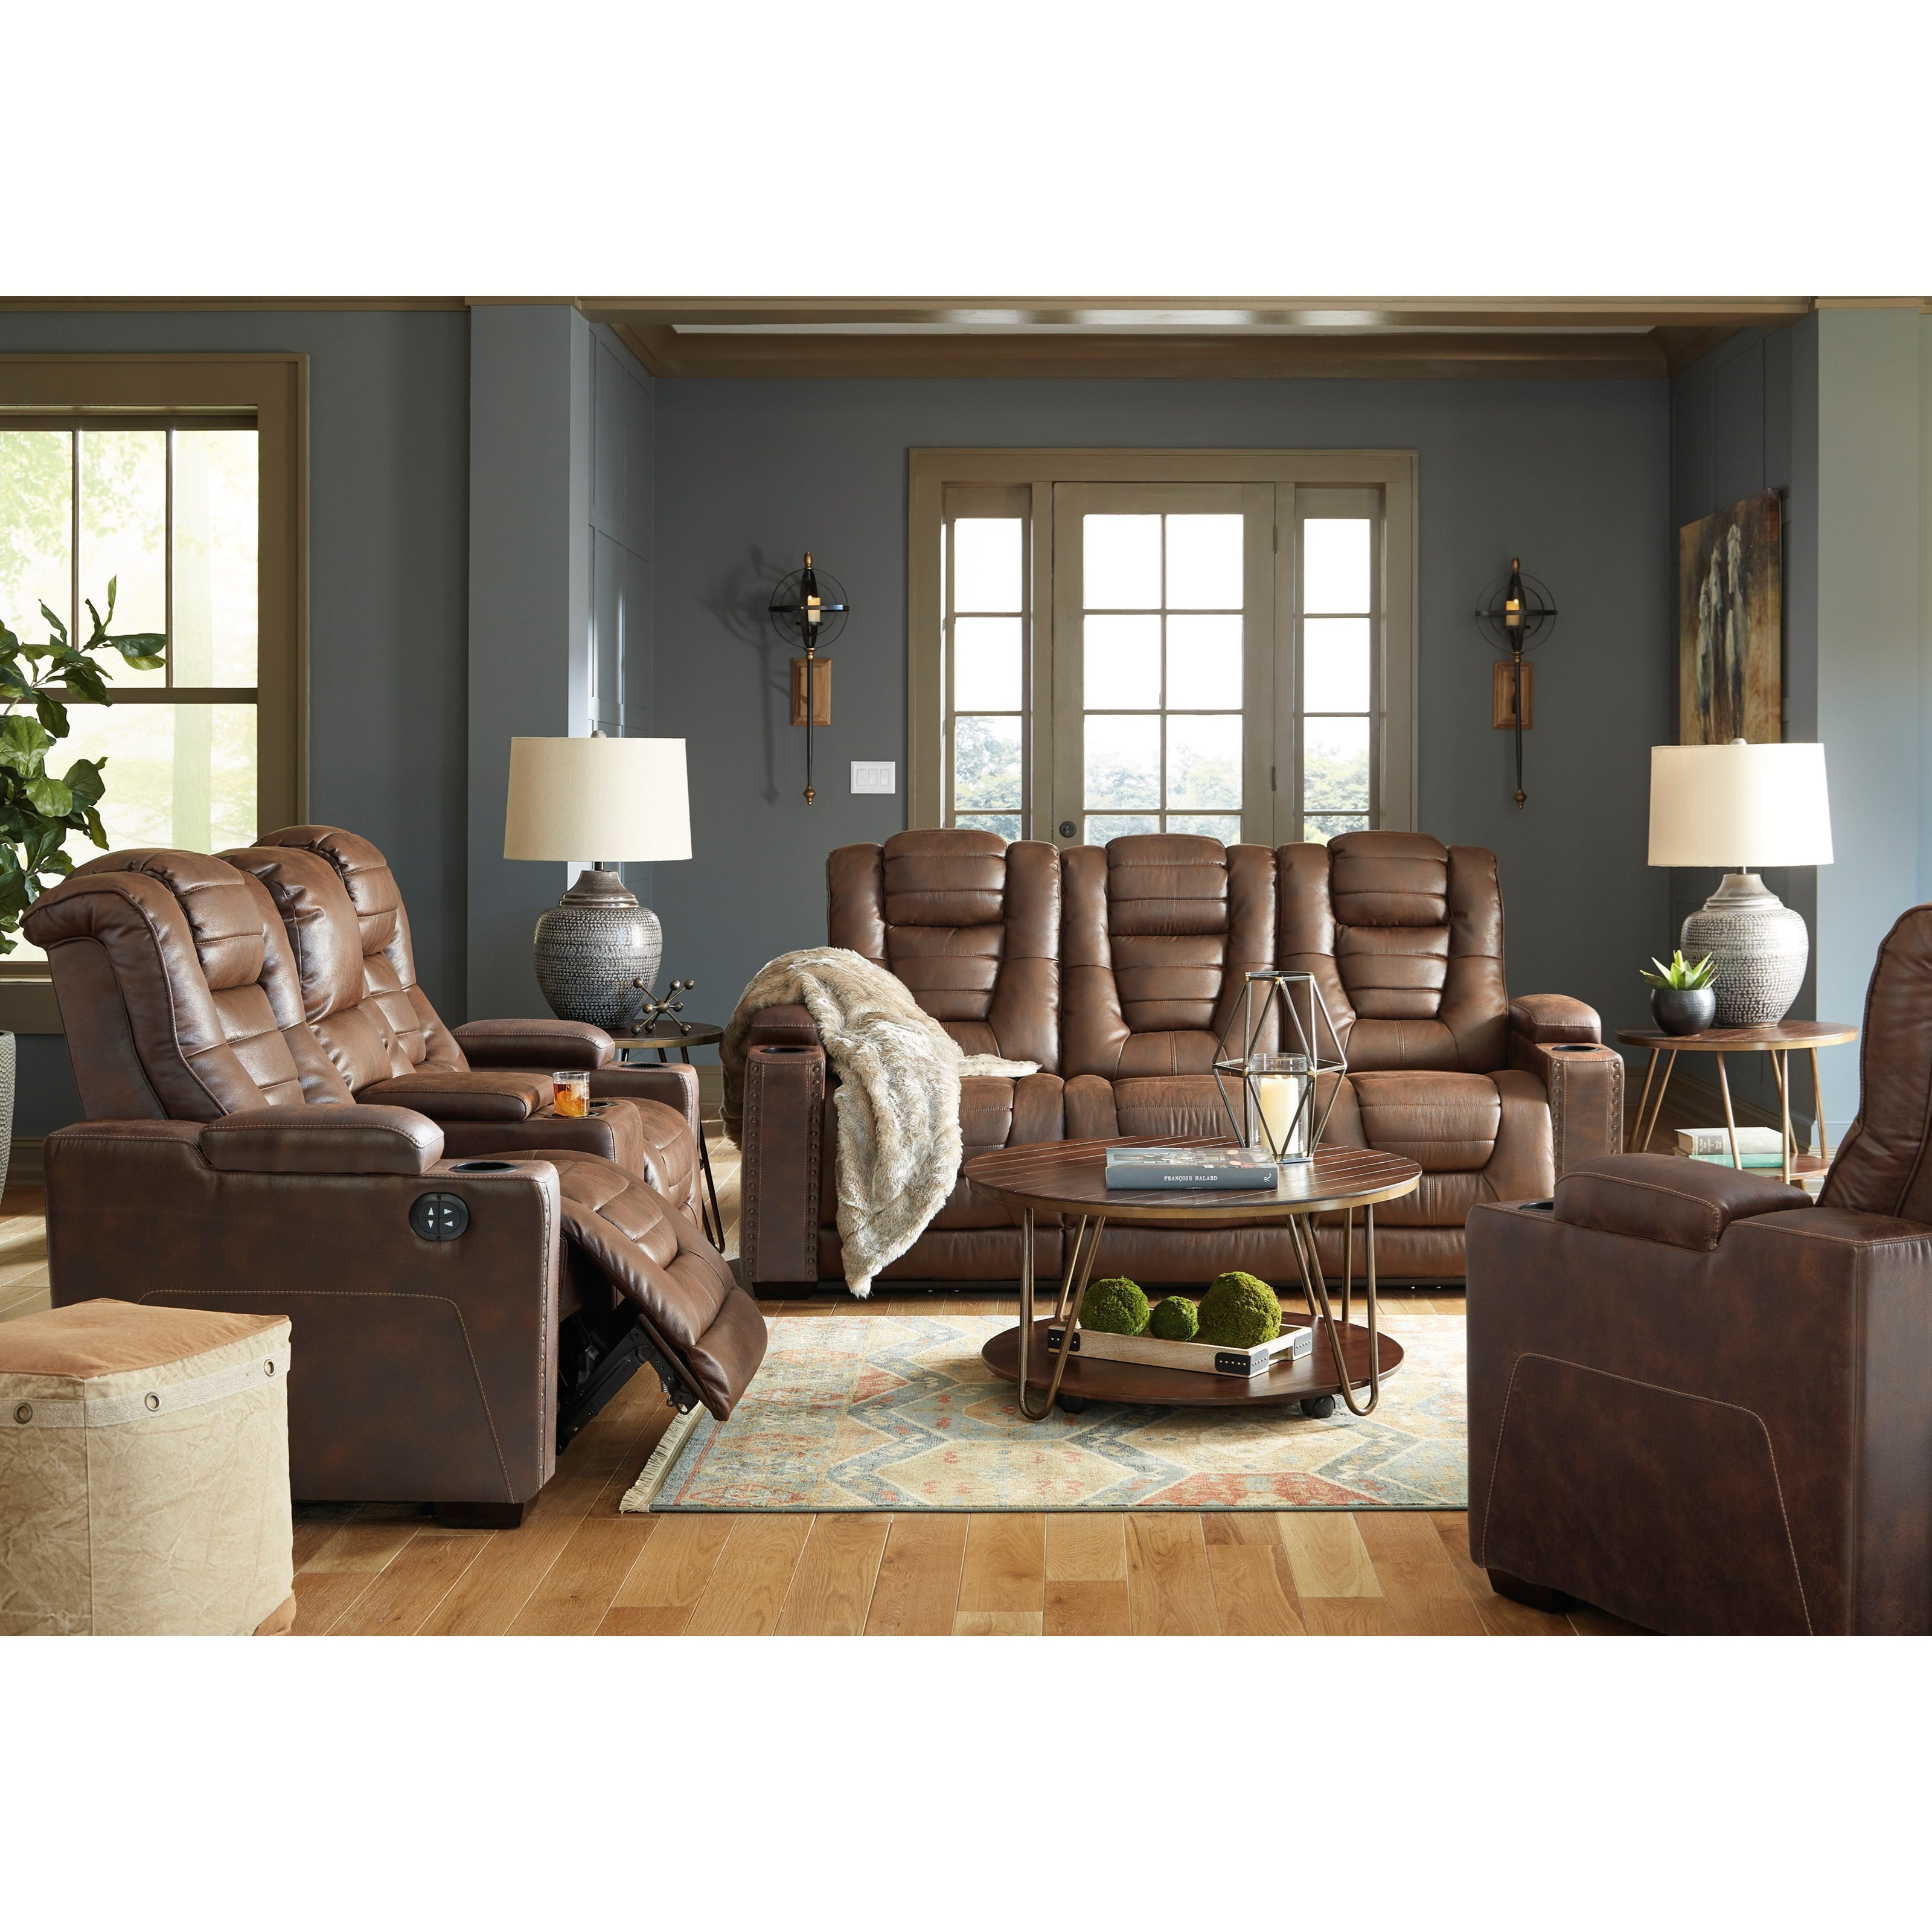 Owner's Box Power Reclining Living Room Group by Signature Design by Ashley at Smart Buy Furniture